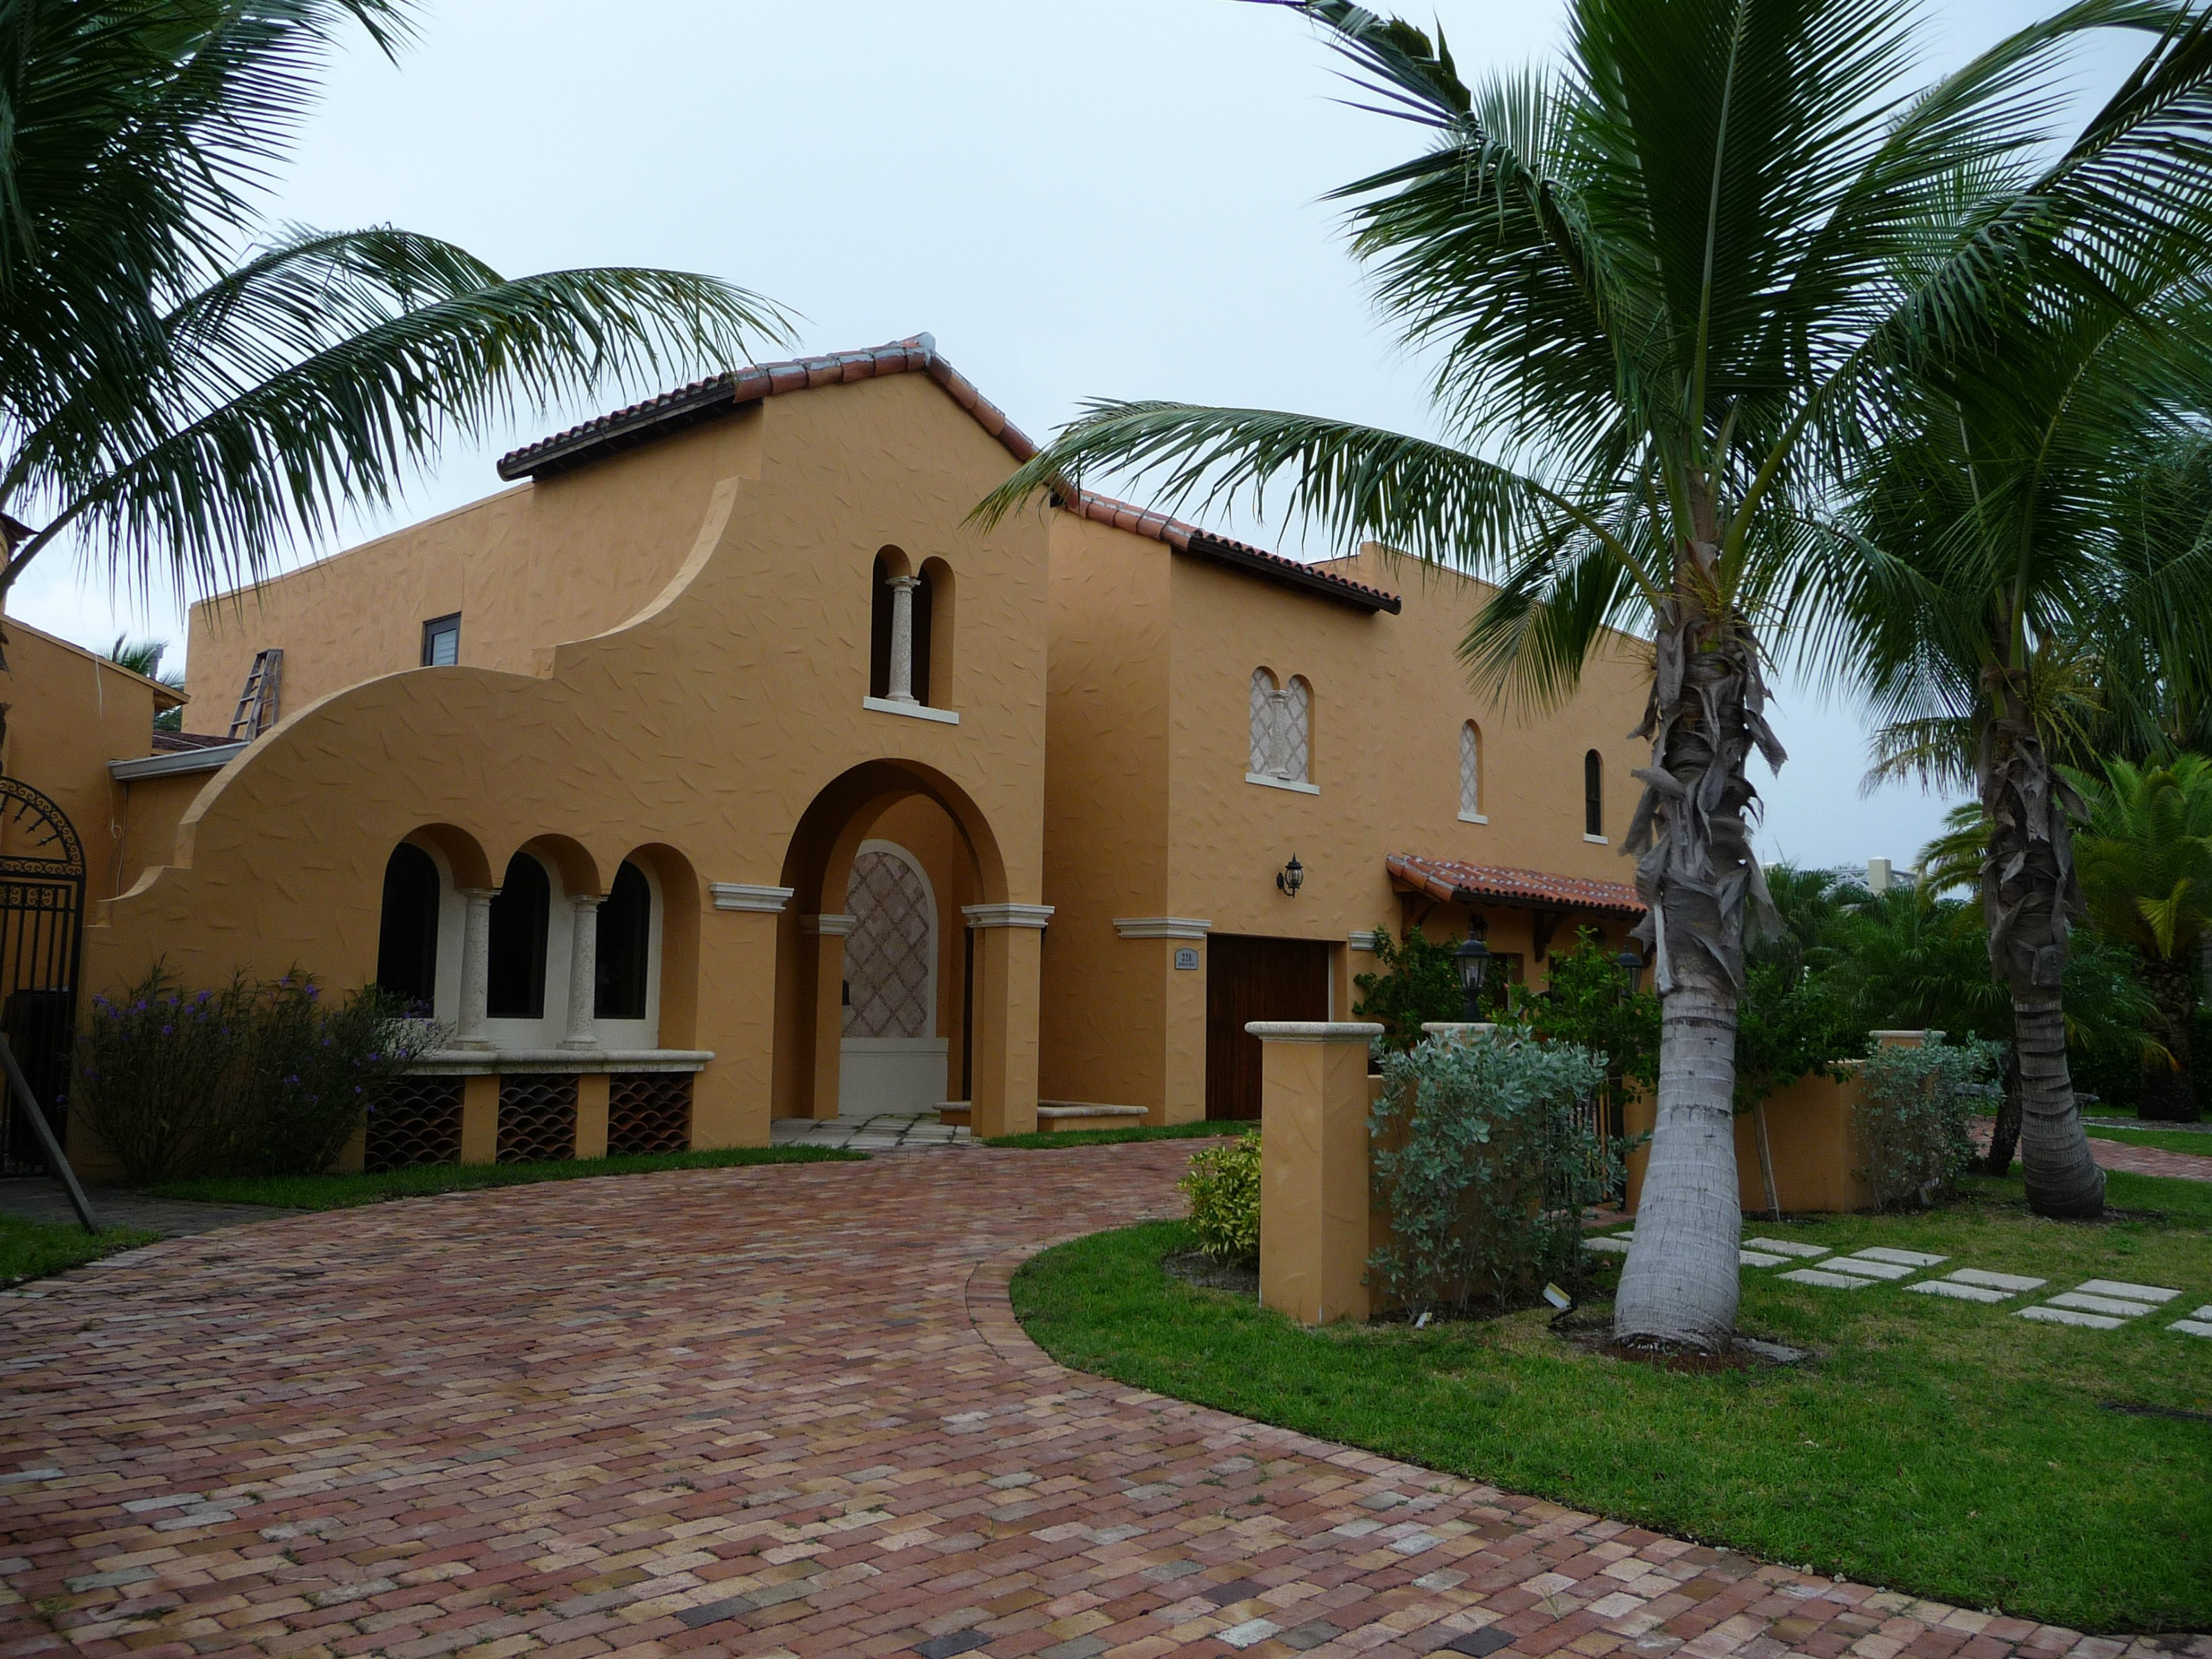 Maison unifamiliale pour l Vente à Beautiful Spanish Style Home 320 Murray Rd West Palm Beach, Florida 33405 États-Unis